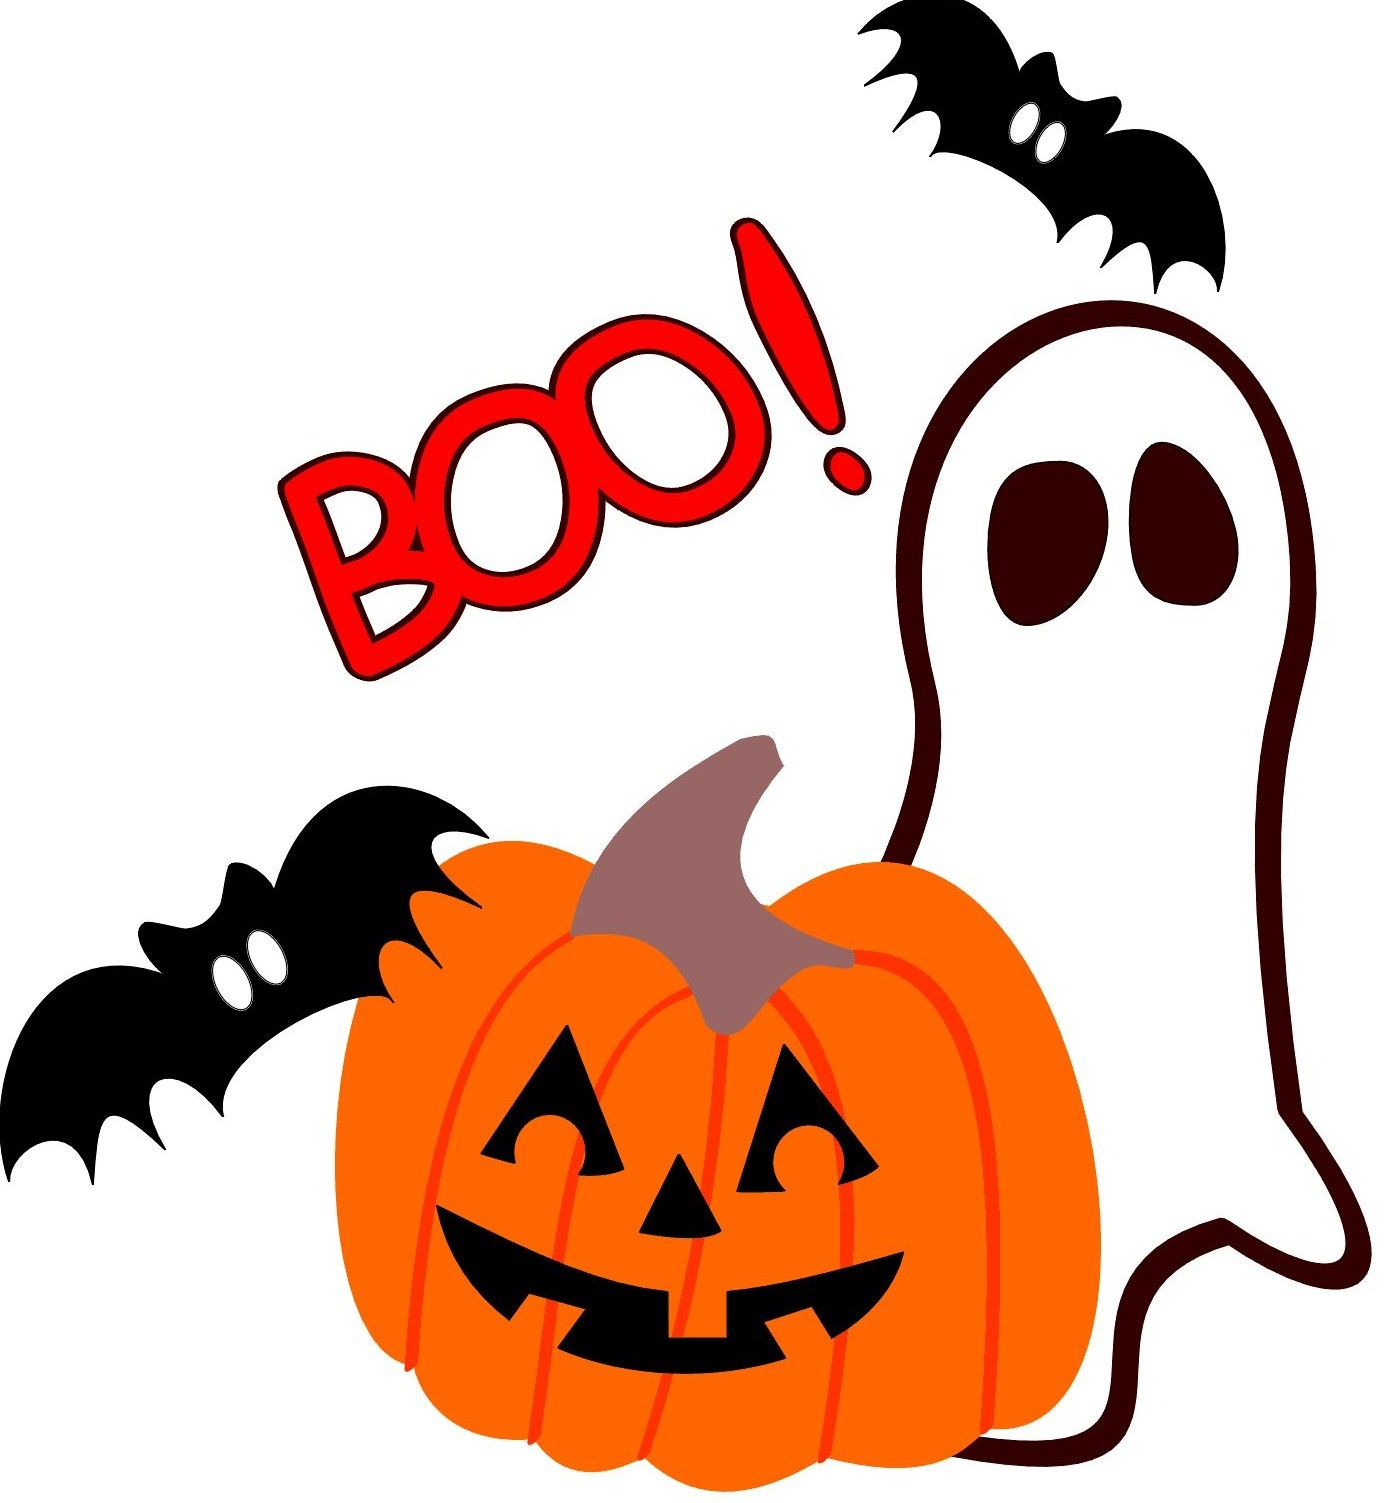 Halloween free clipart pictures png library library Halloween clipart free clipart images 2 - Cliparting.com png library library